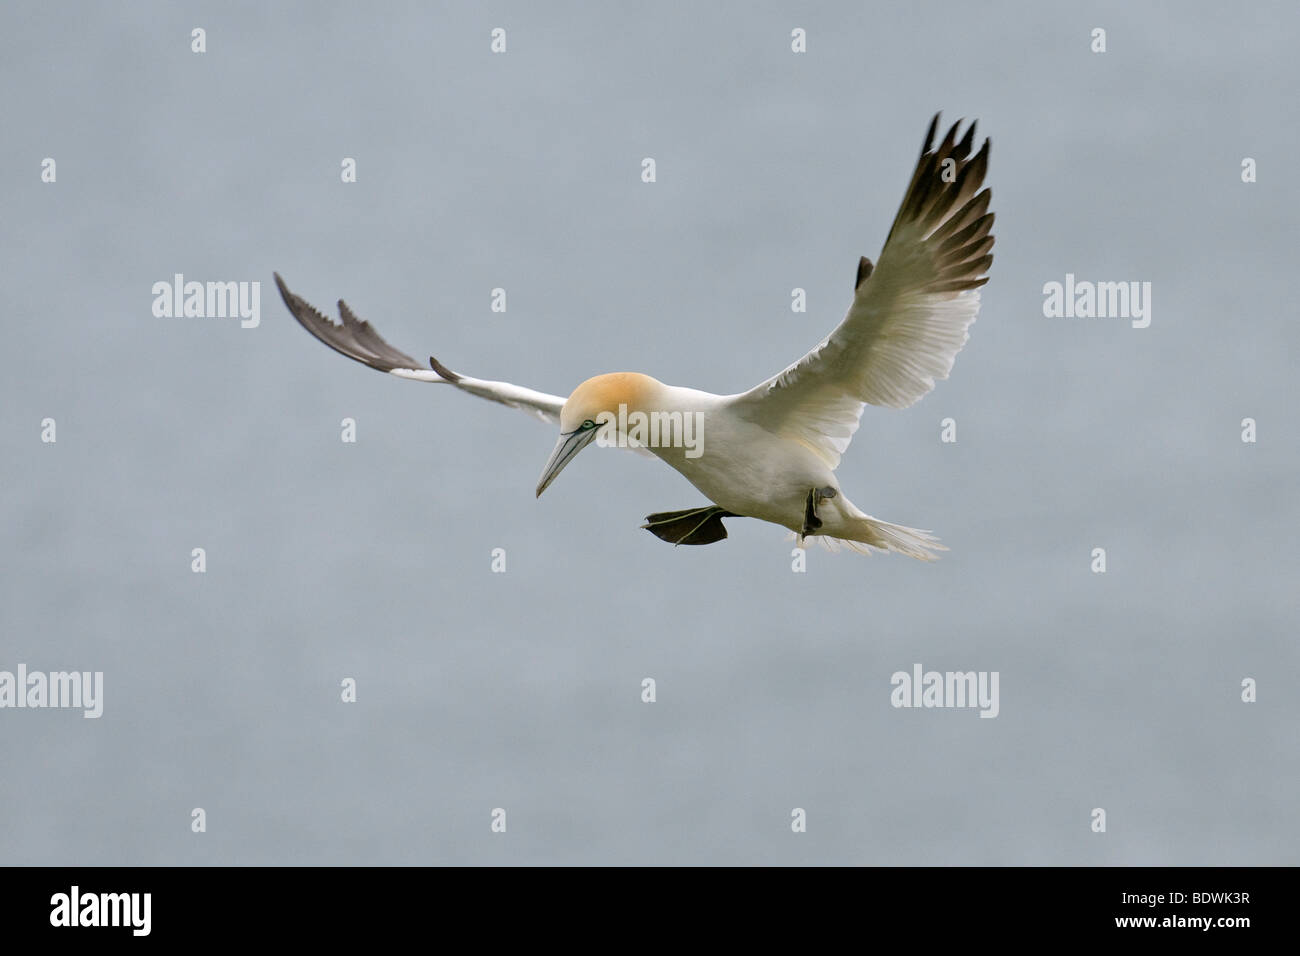 Northern gannet Morus bassanus adult in flight. - Stock Image